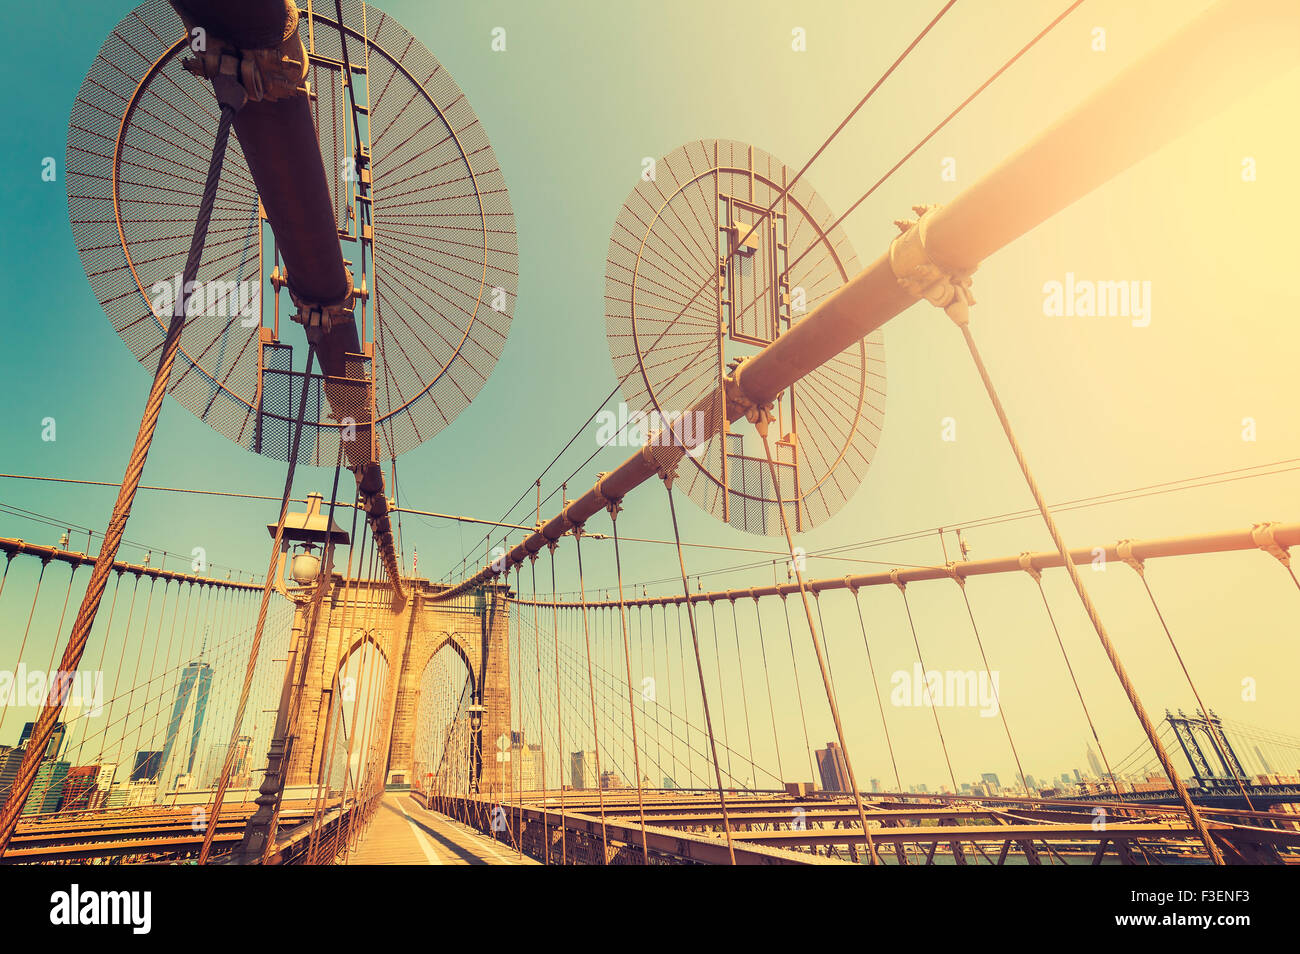 Vintage toned fisheye lens picture of Brooklyn Bridge in New York City, USA. - Stock Image